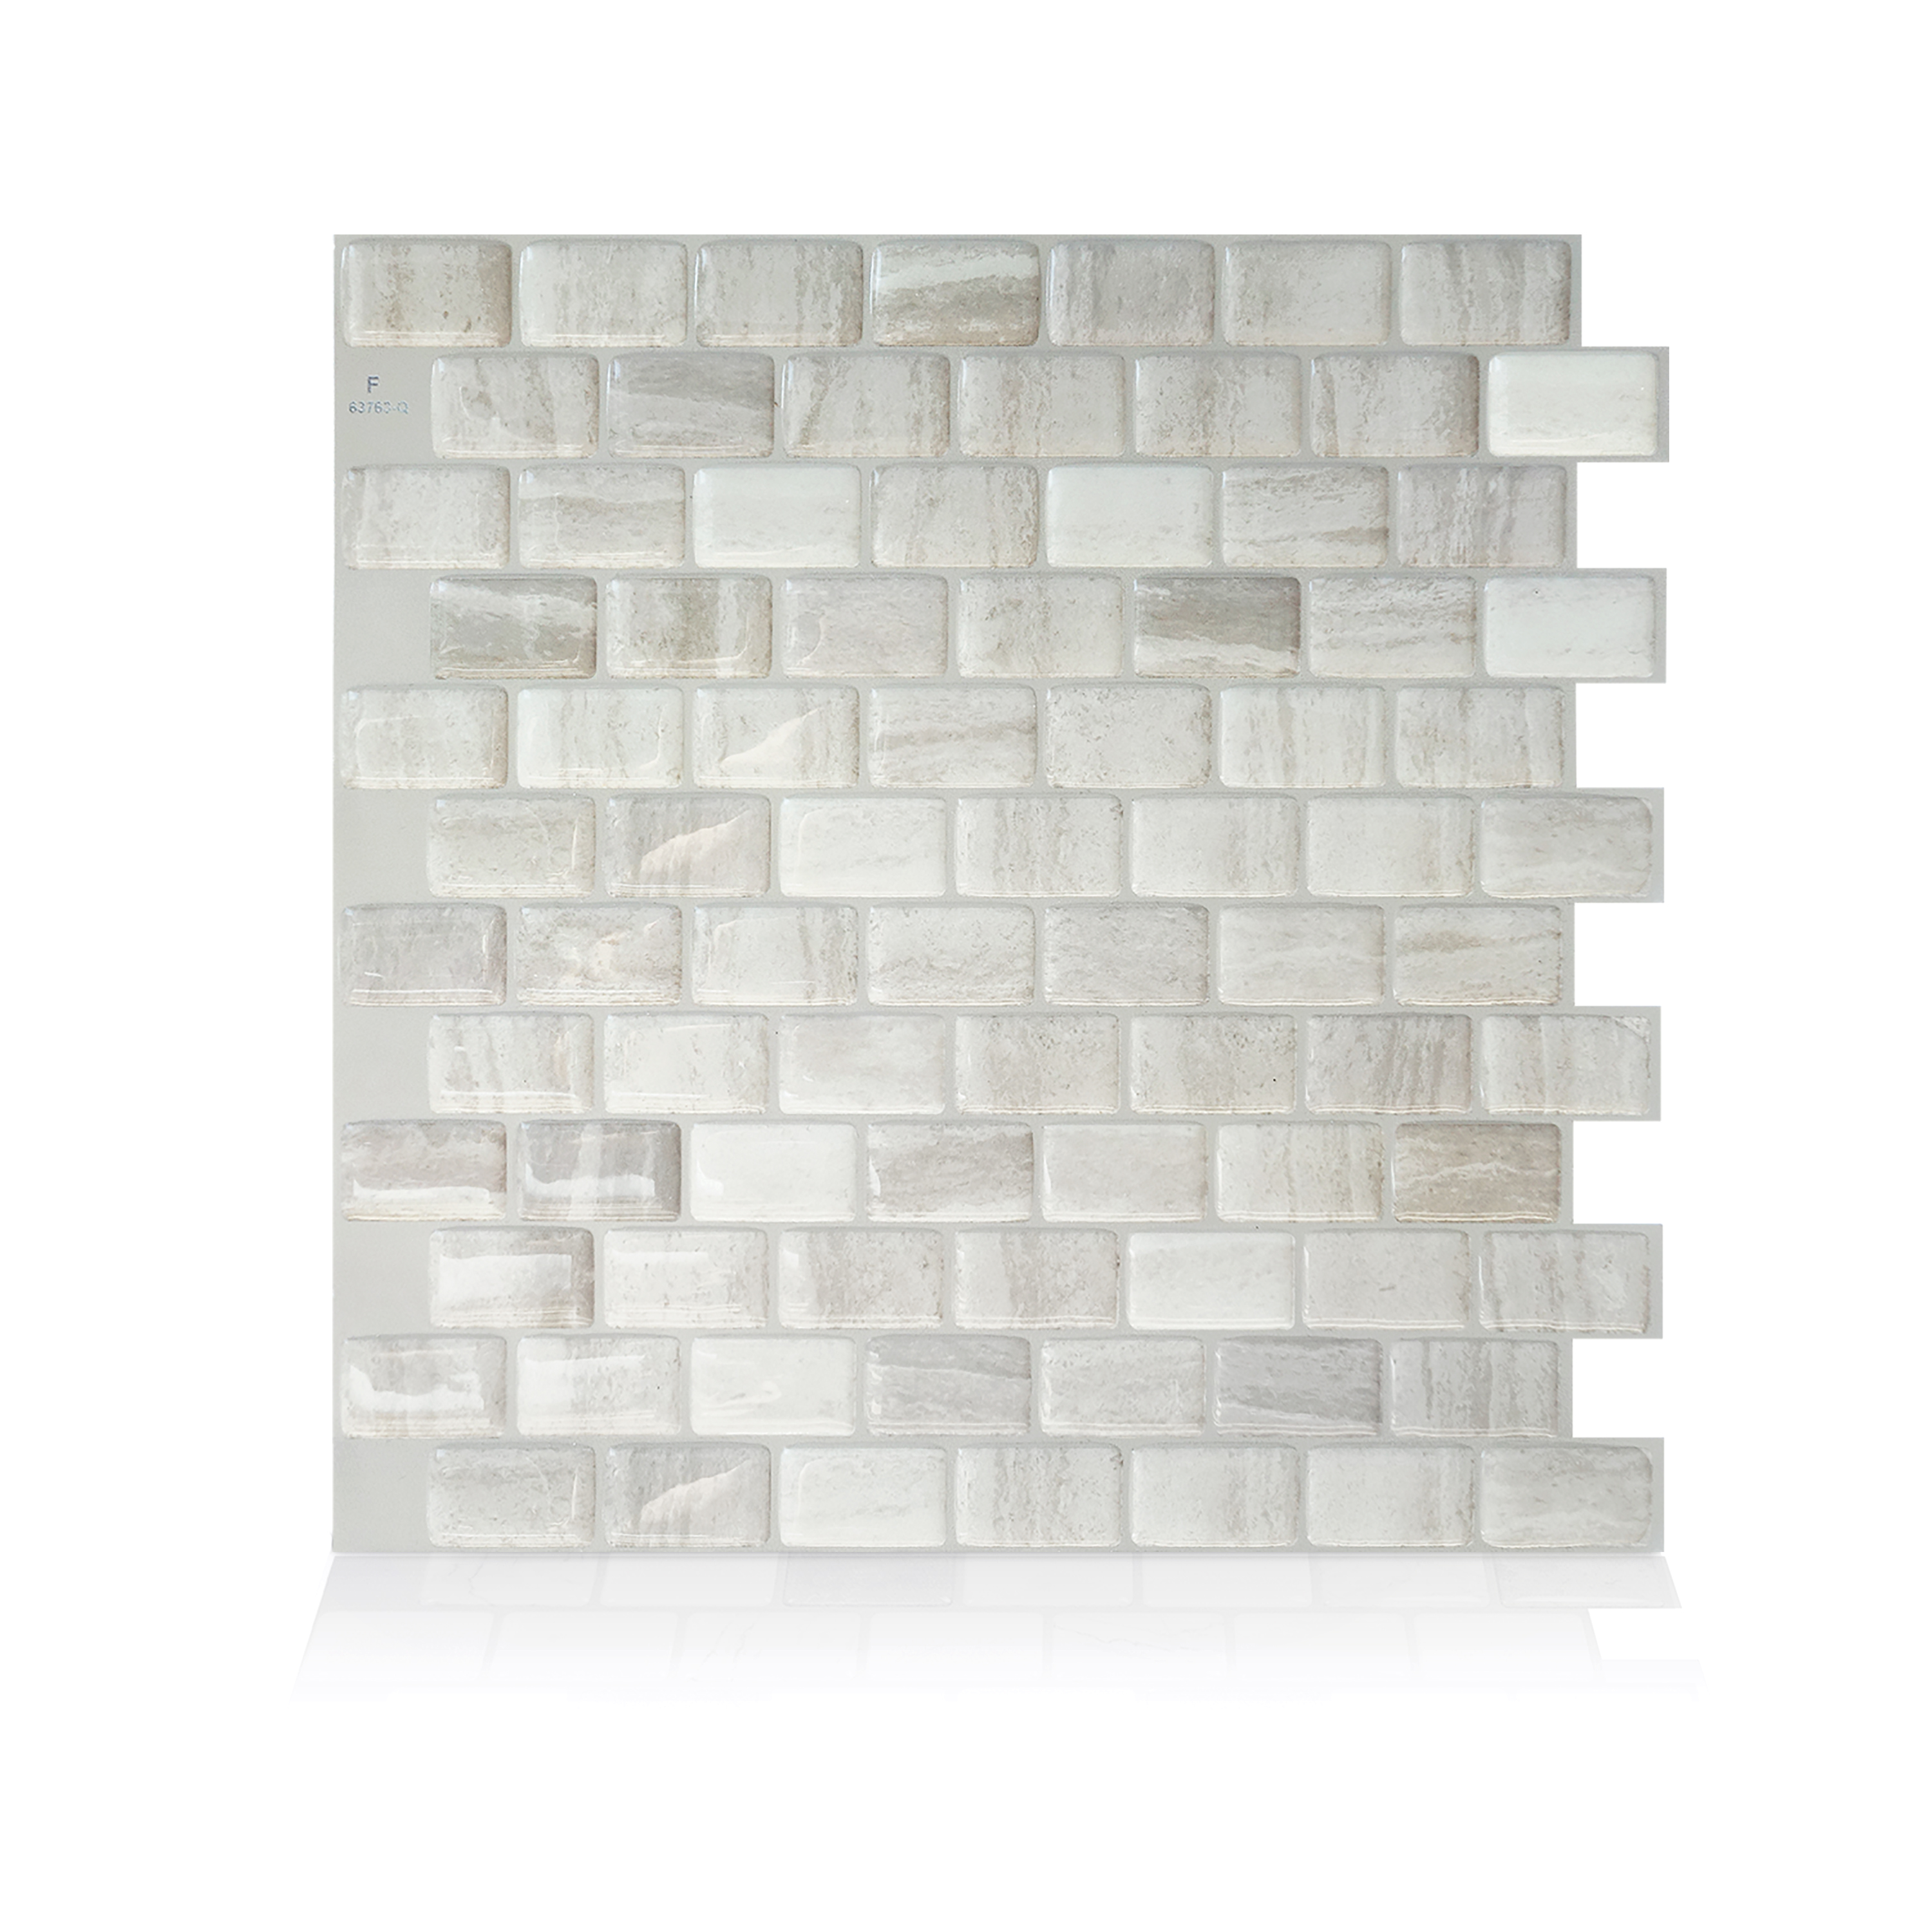 Smart Tiles 9.80 in x 9.74 in Peel and Stick Self-Adhesive Mosaic Backsplash Wall Tile - Ravenna Fabro (each)